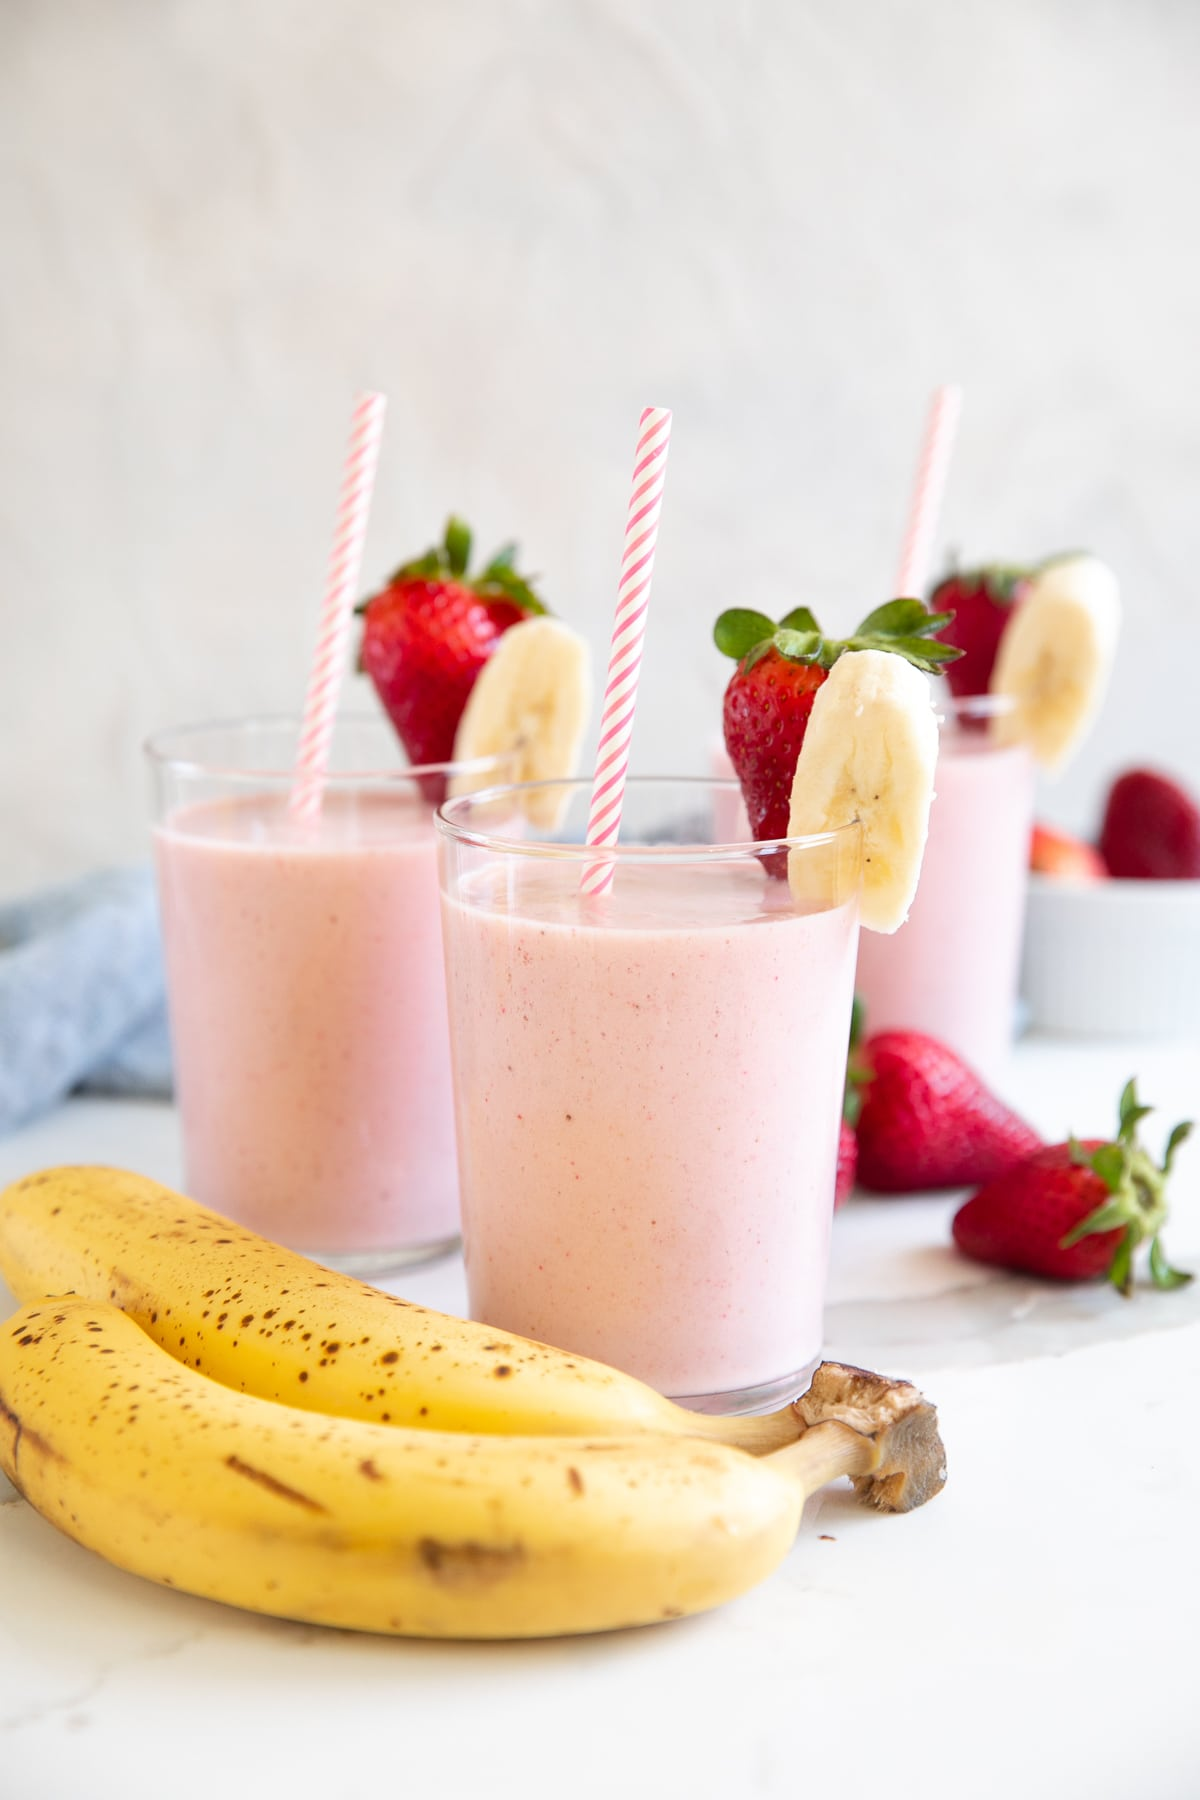 Easy Strawberry Banana Smoothie Recipe The Forked Spoon